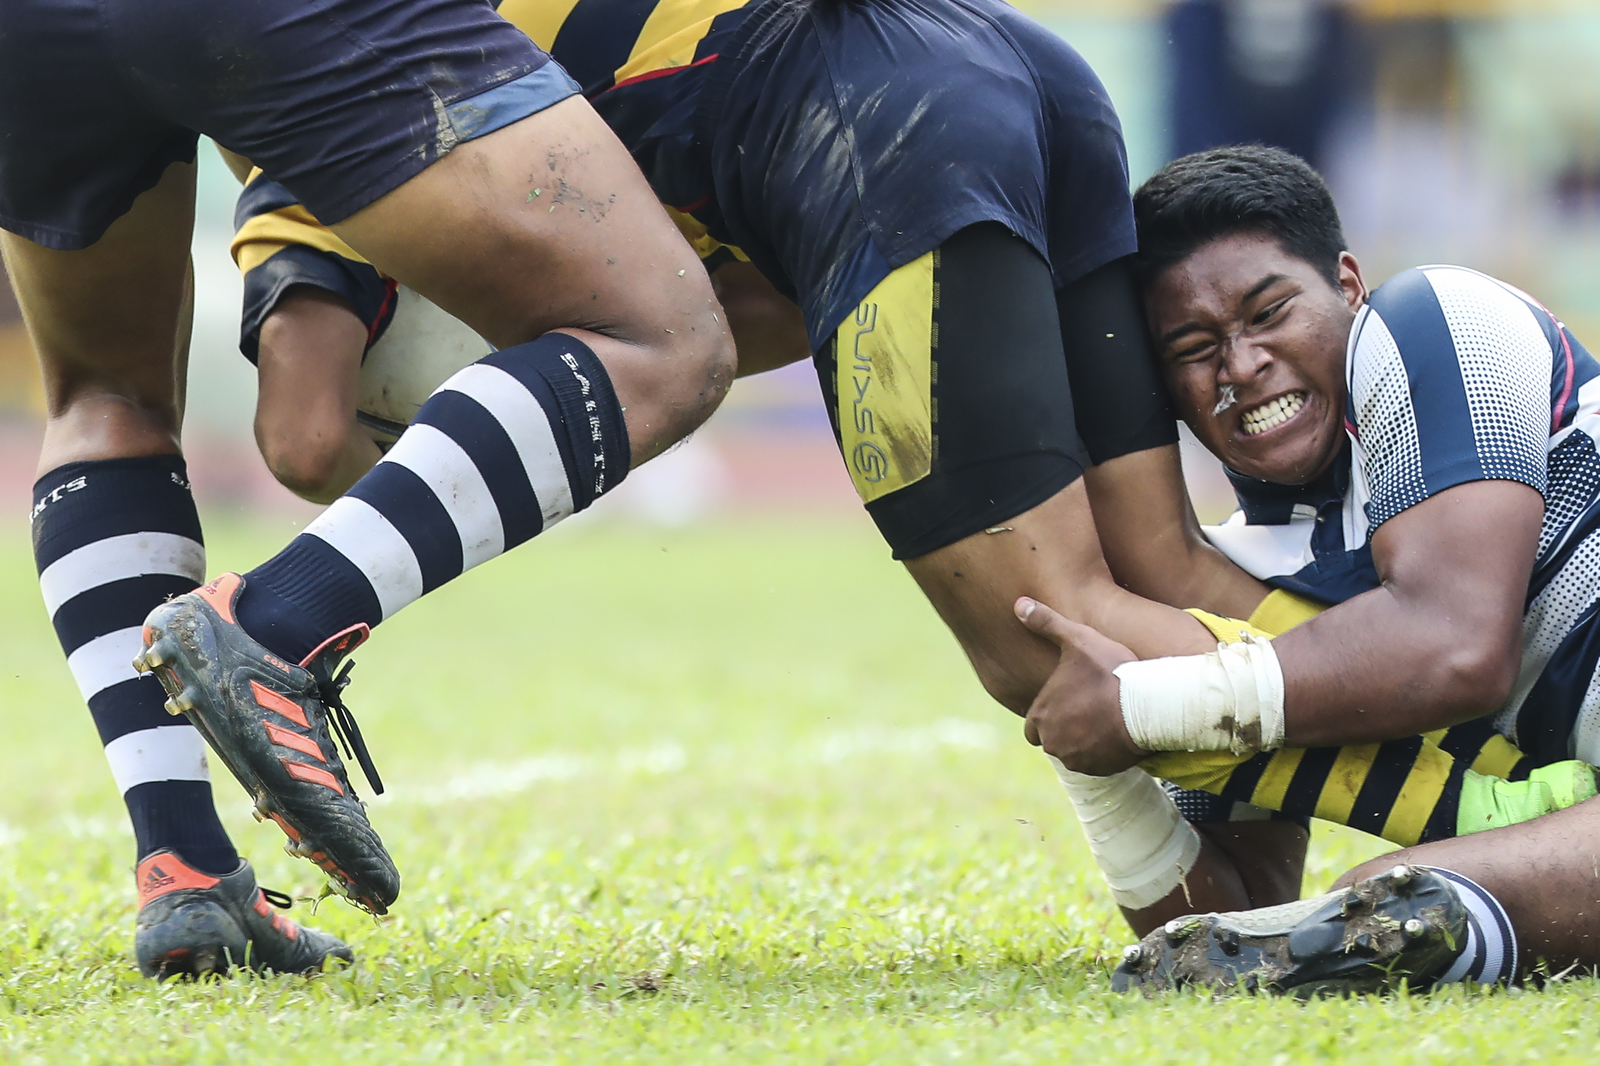 Umar Mohamed Sha'ari of St. Andrew's Secondary School tackles Kenji Chng of Anglo-Chinese School (Independent) during the National Schools boys' 'B' Division rugby final at Queenstown Stadium on March 28,2018 in Singapore. (Photo © Yong Teck Lim/Red Sports)